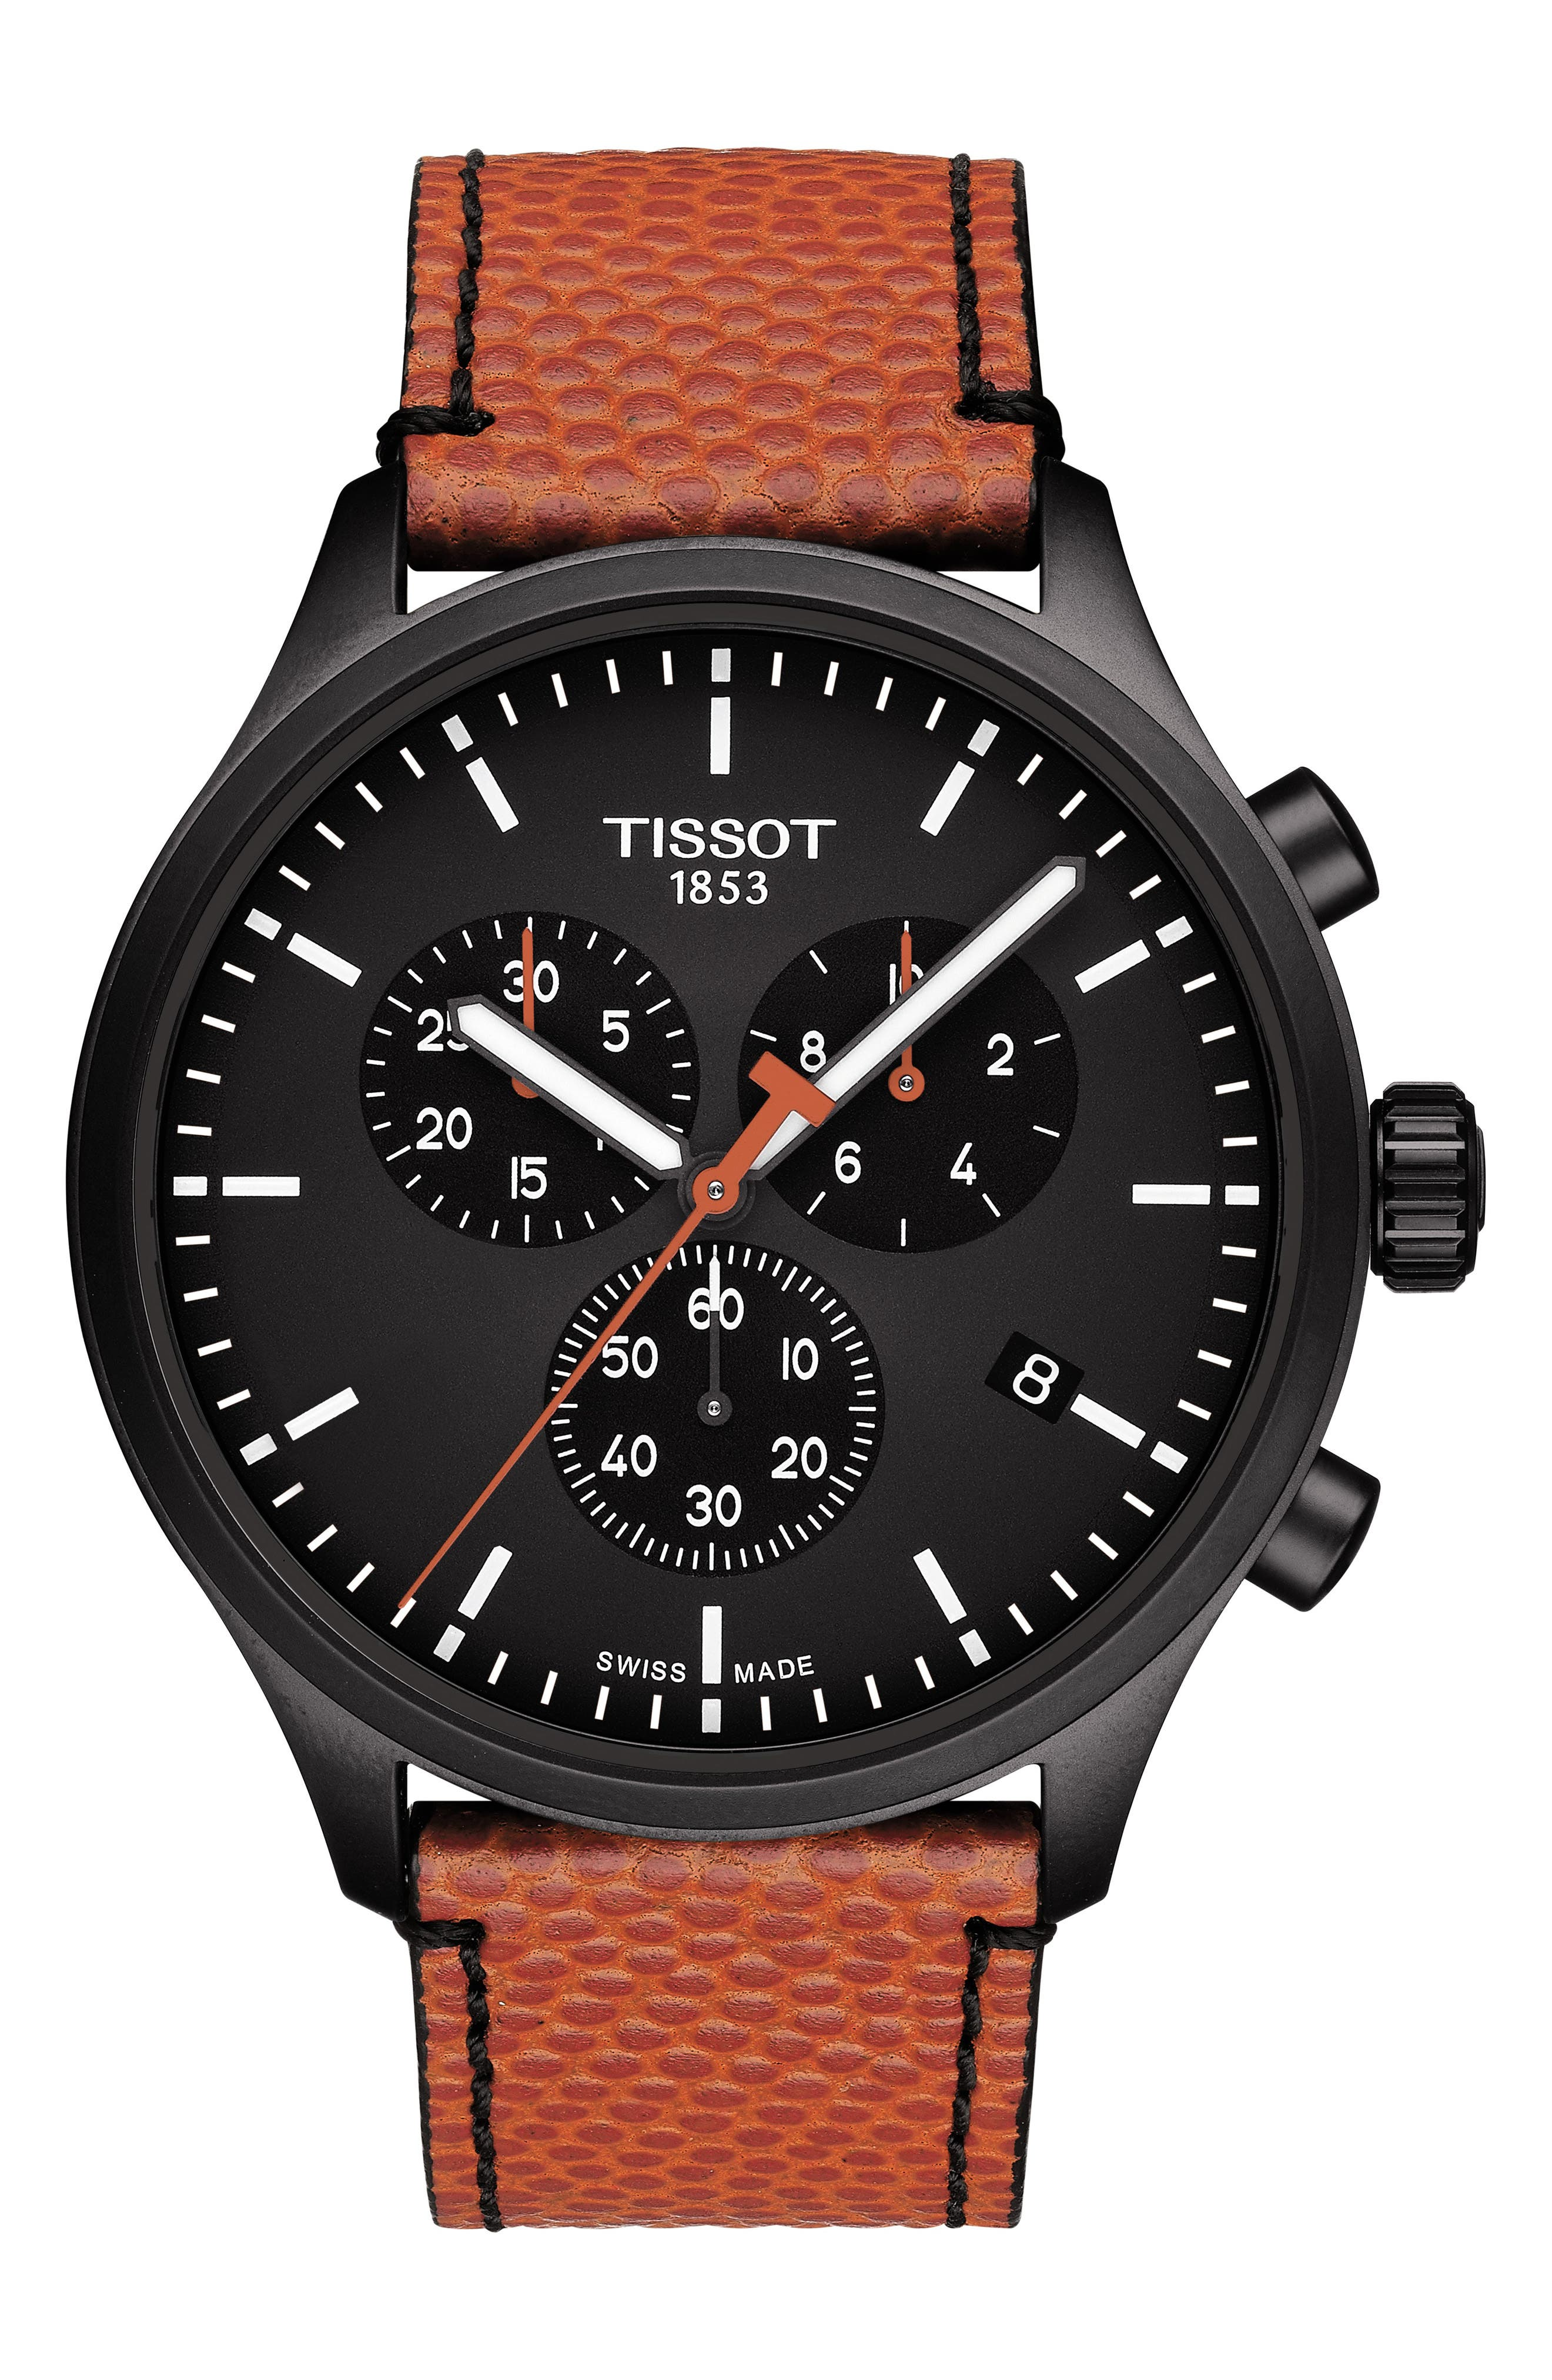 Chrono Xl Nba Leather Strap Watch, 45mm by Tissot